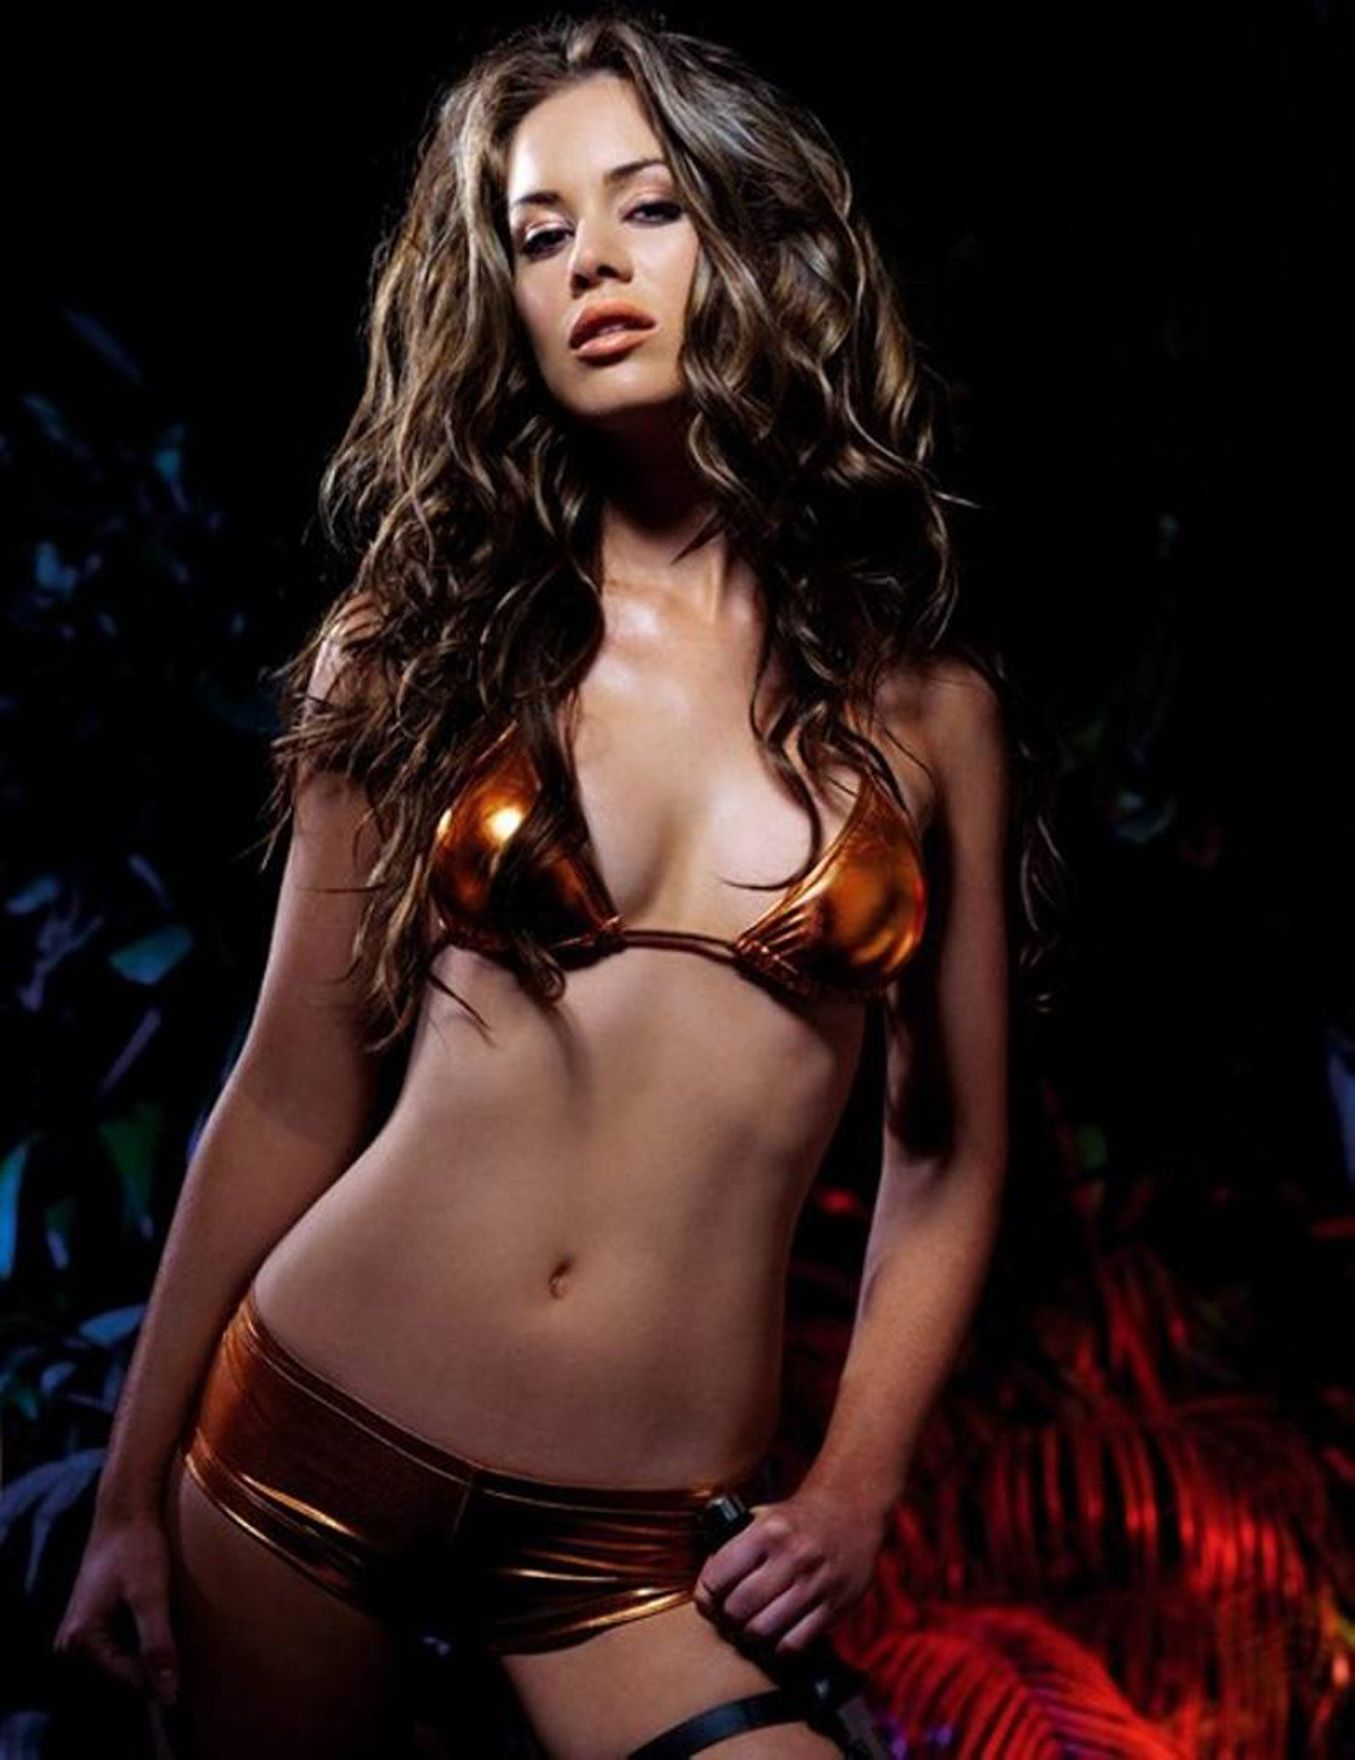 Forum on this topic: Matilde Simone Nude Photos and Videos, roxanne-mckee-ass/